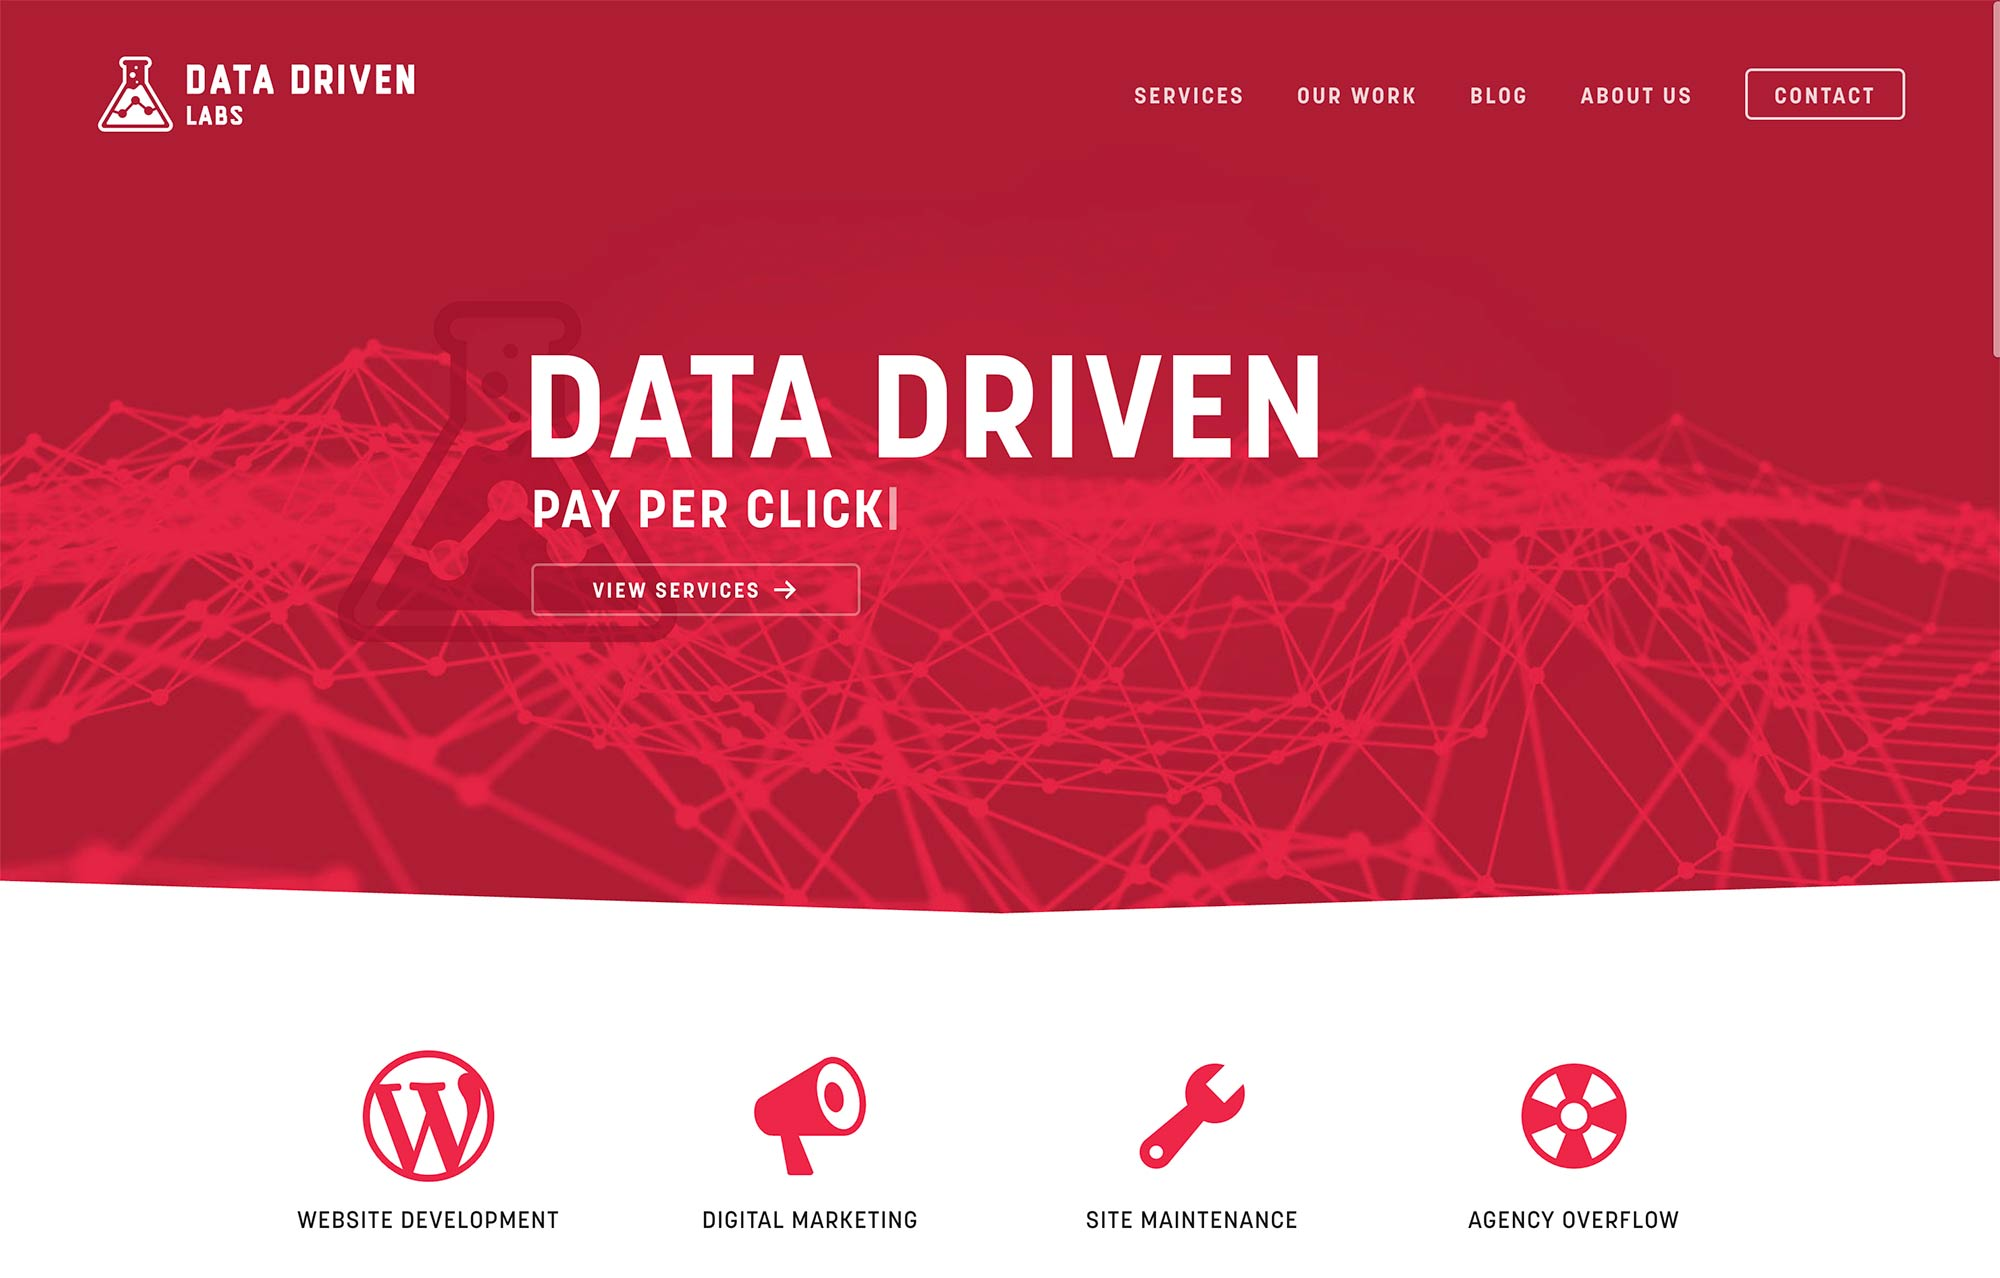 Data Driven Labs